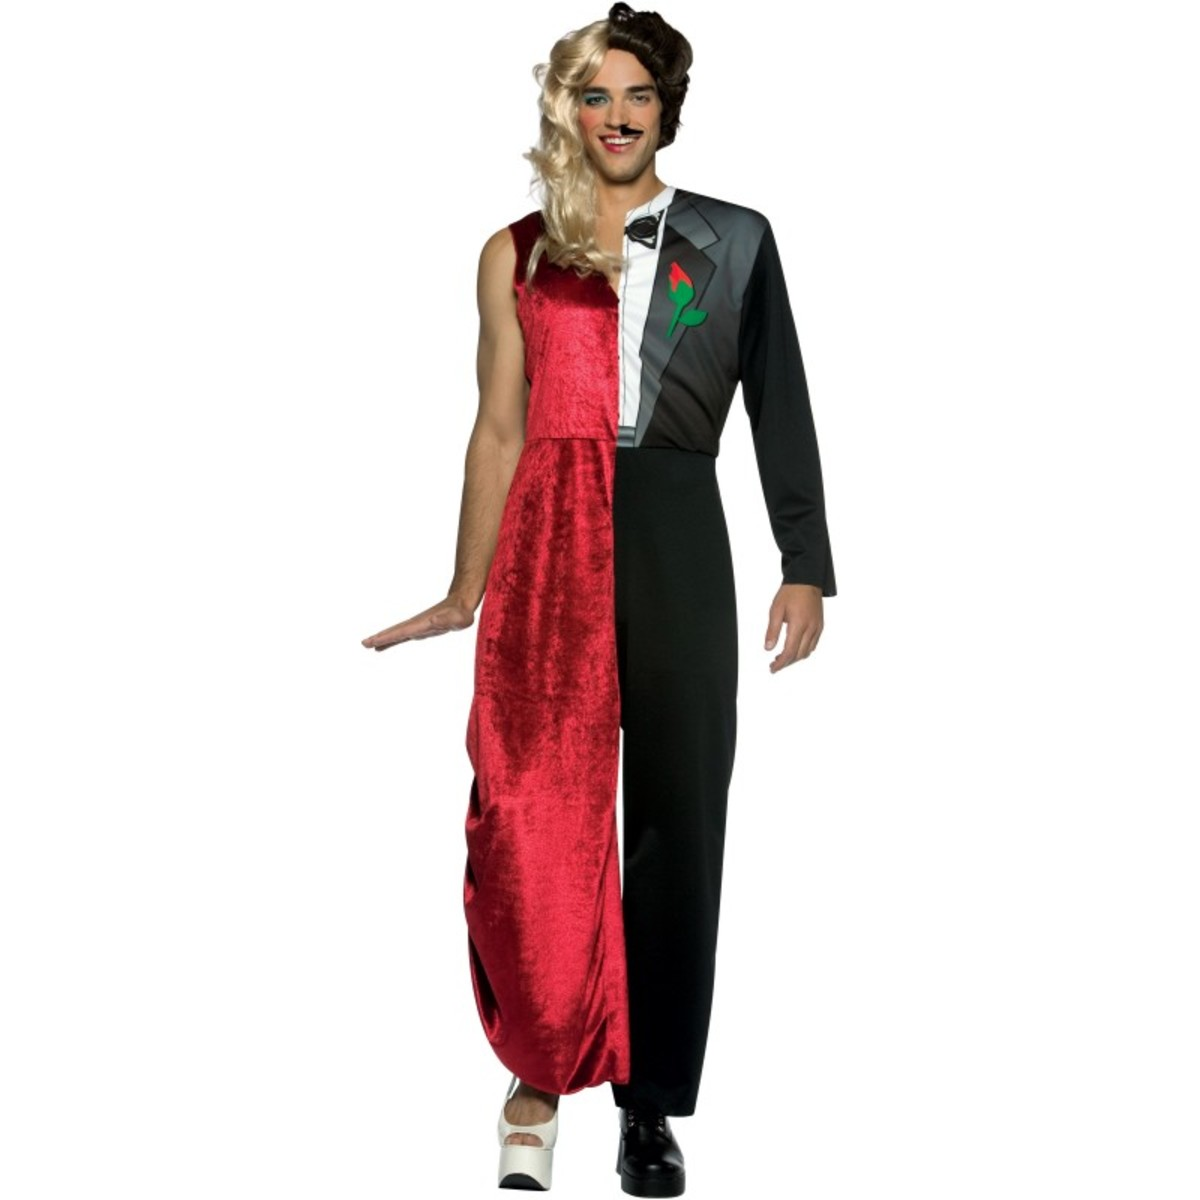 funny-costume-ideas-for-halloween-2009